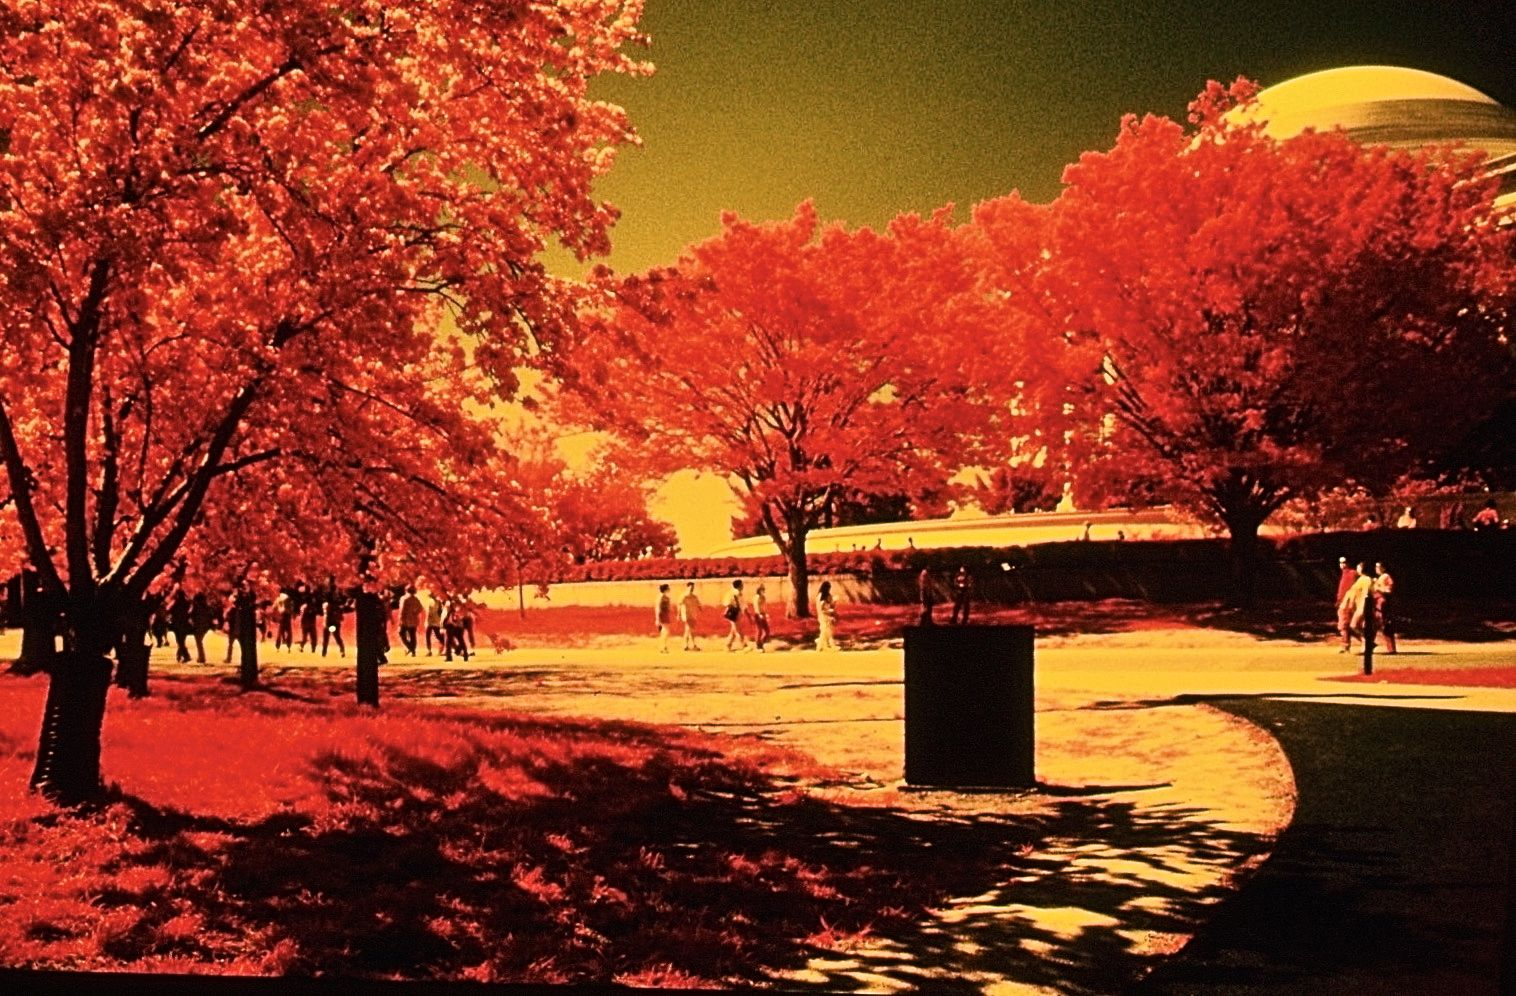 washington dc cherry blossoms color infrared film 2001 7